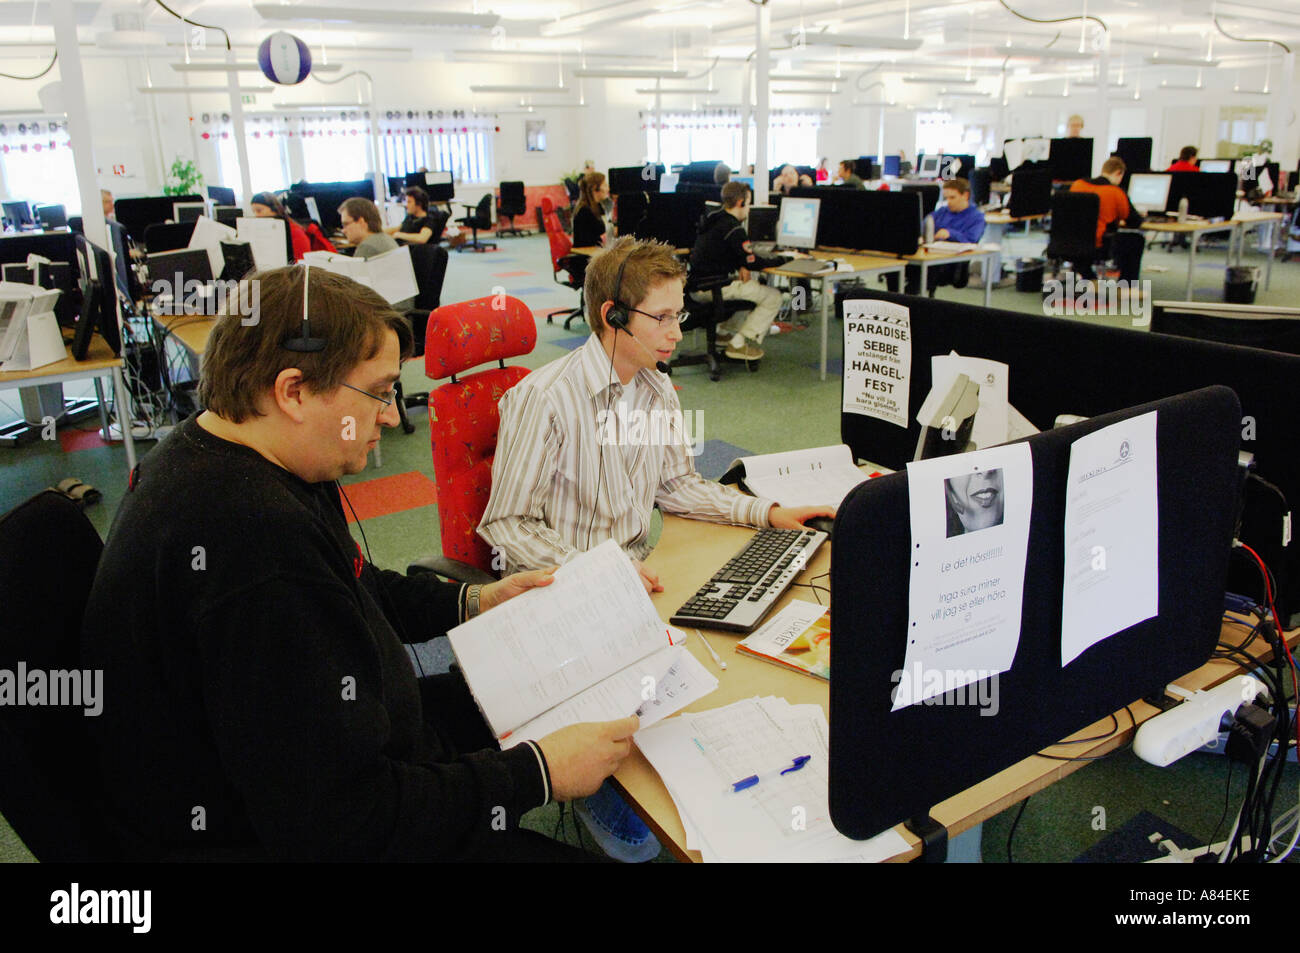 Staff at Call-center in Gällivare, northern Sweden - Stock Image